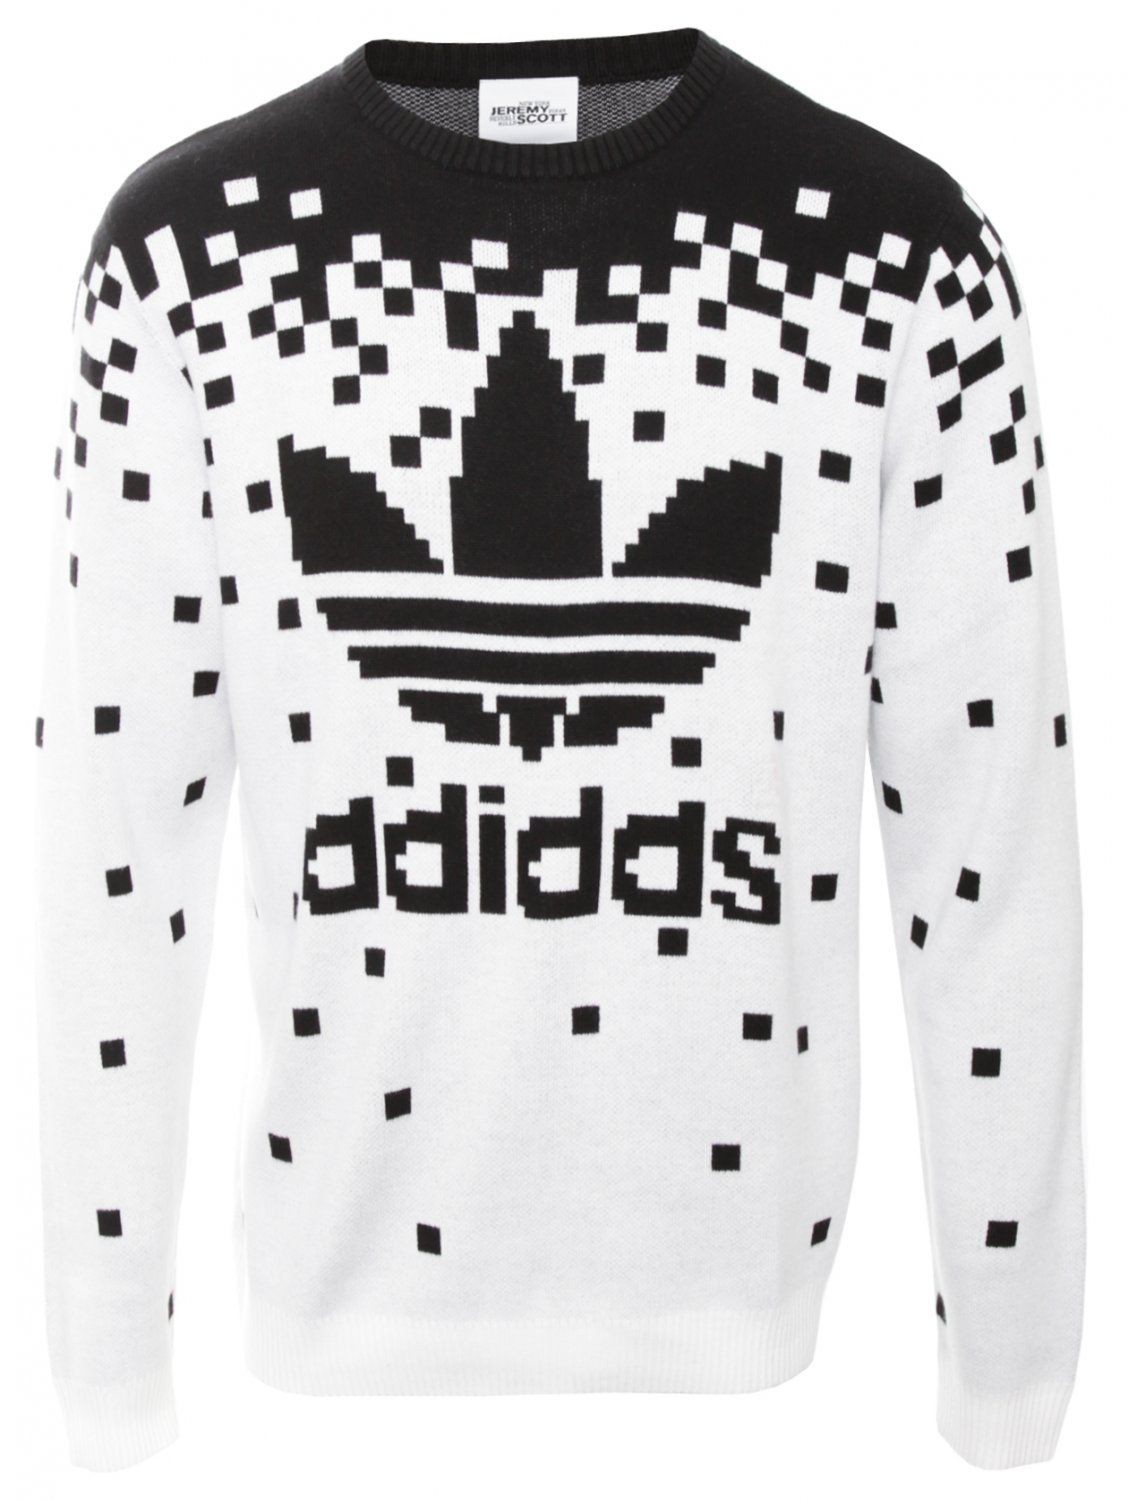 Pixel Knit Sweatshirt Black | Jeremy Scott for Adidas